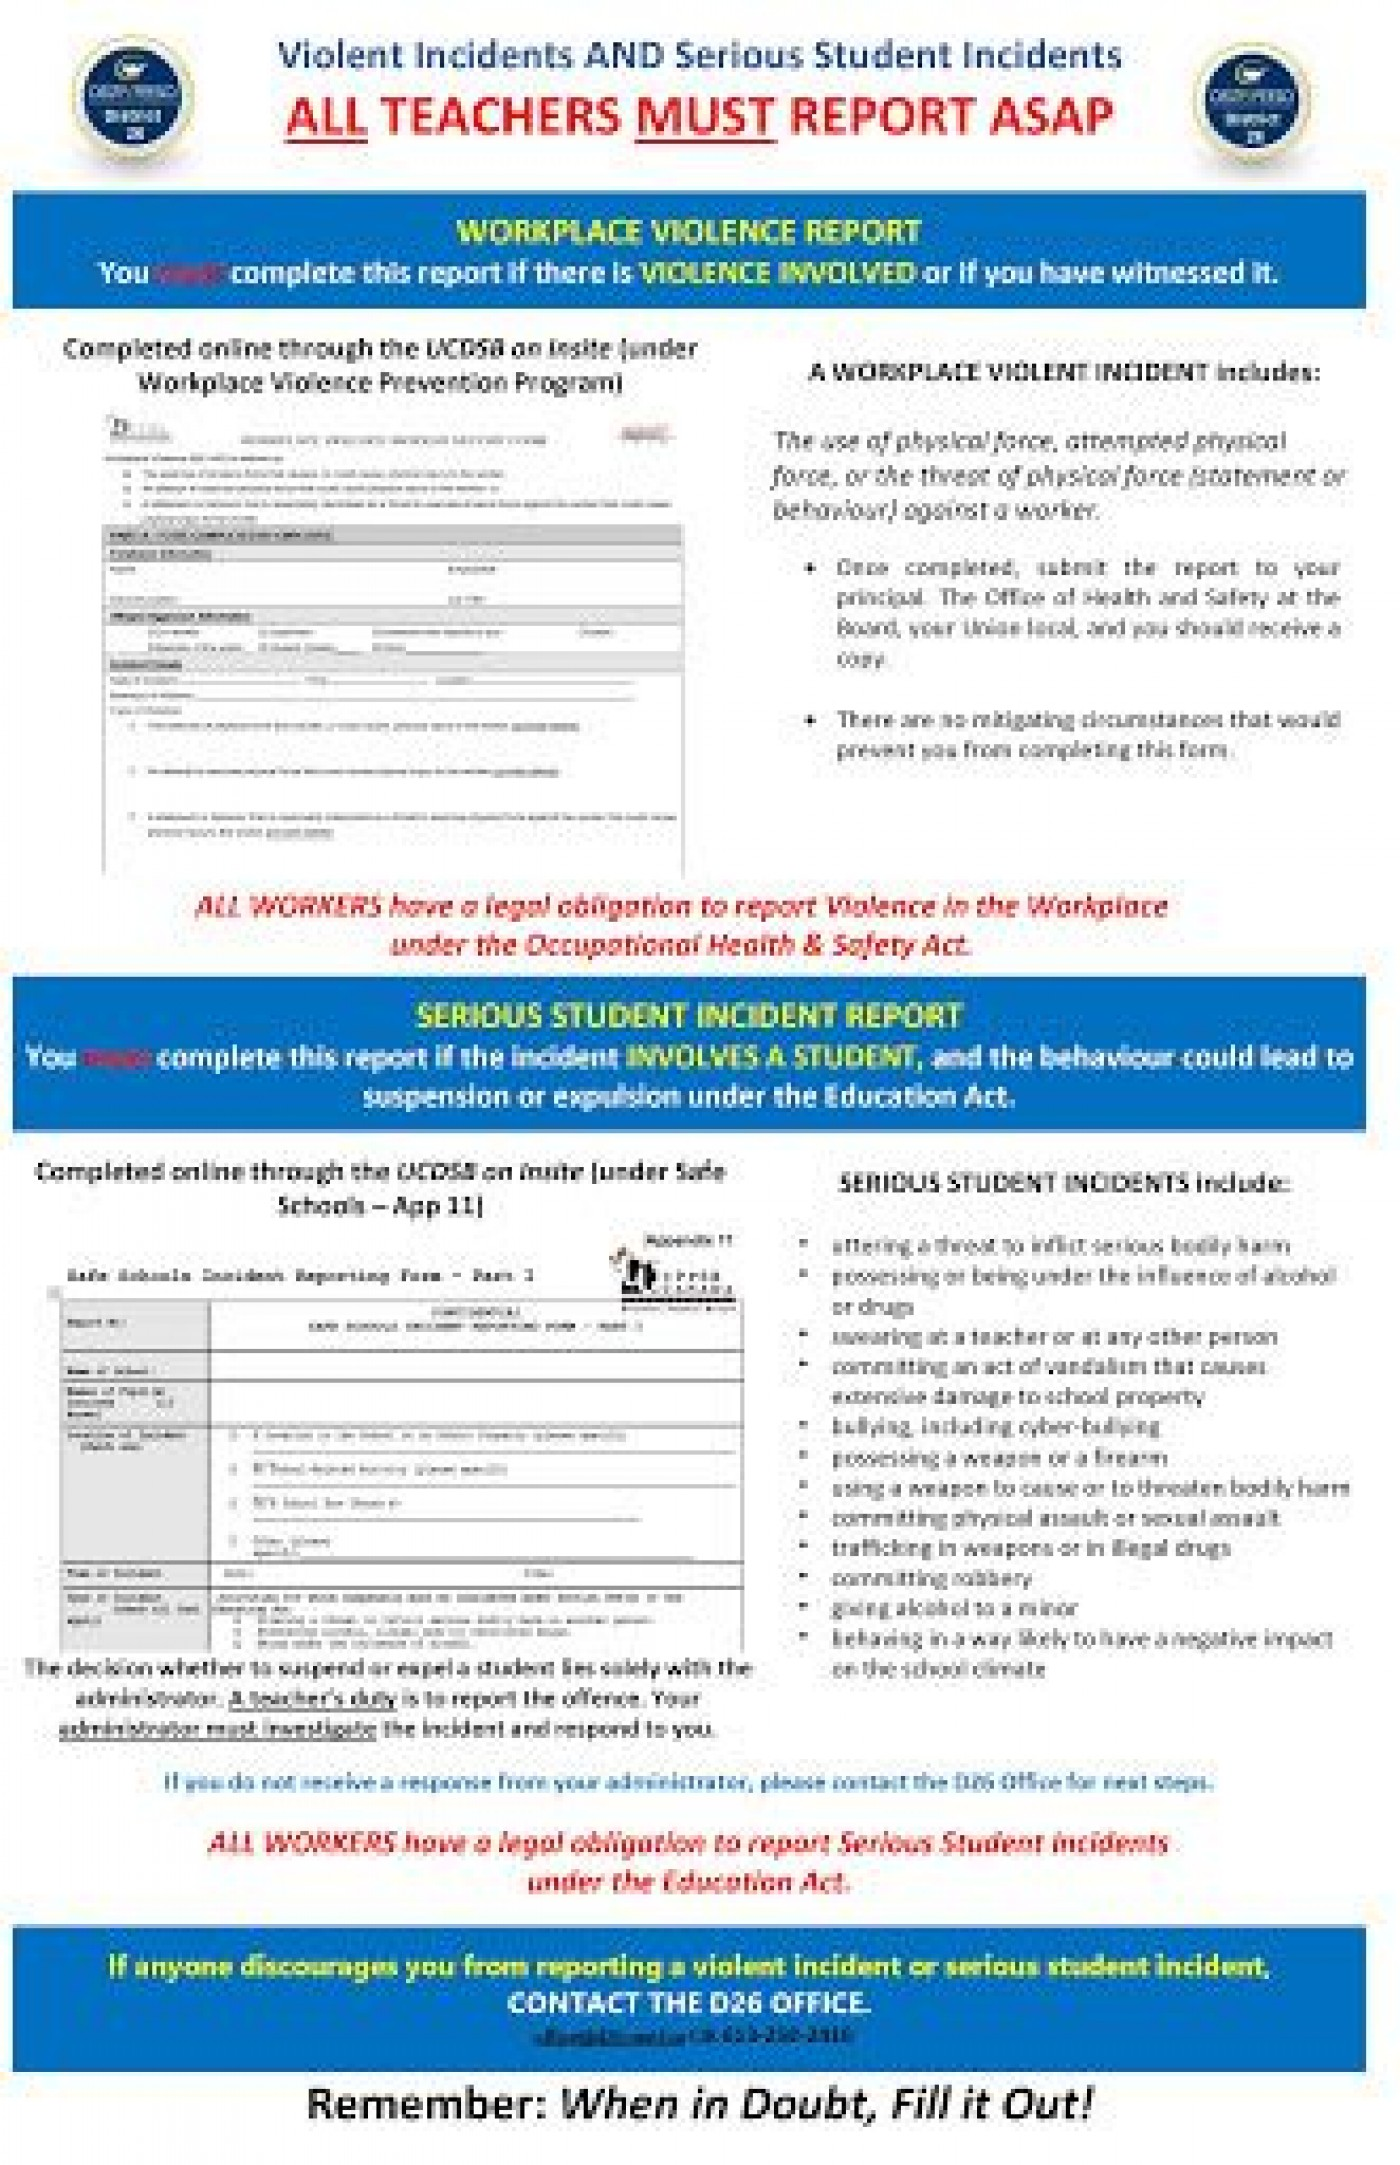 000 Stirring Workplace Injury Report Form Ontario Sample  Incident Violence1400